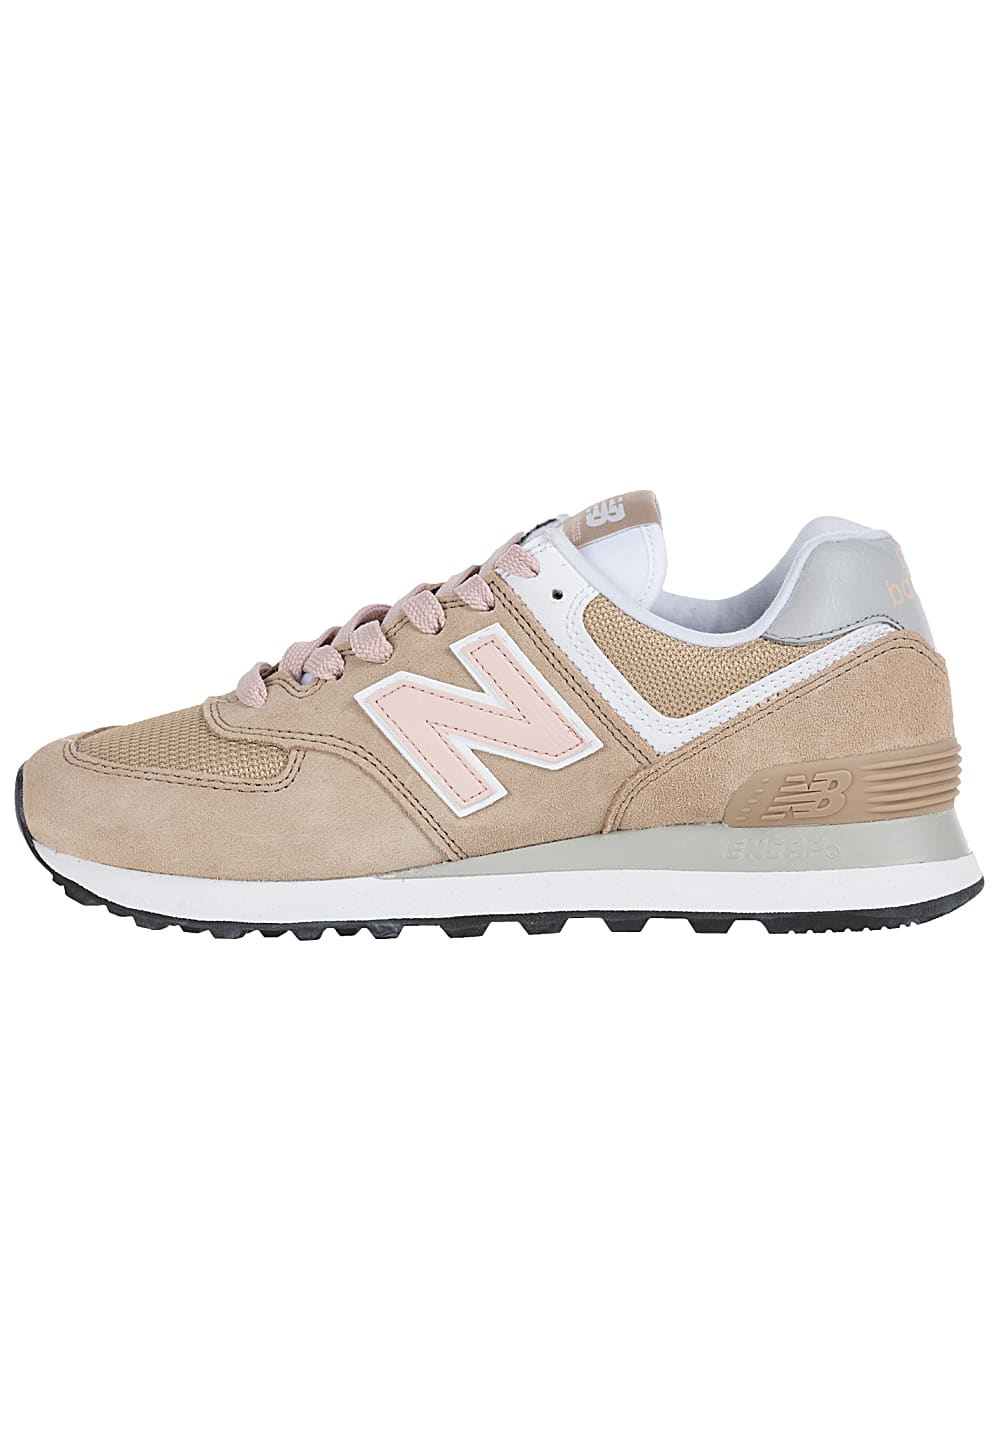 new balance marron et or